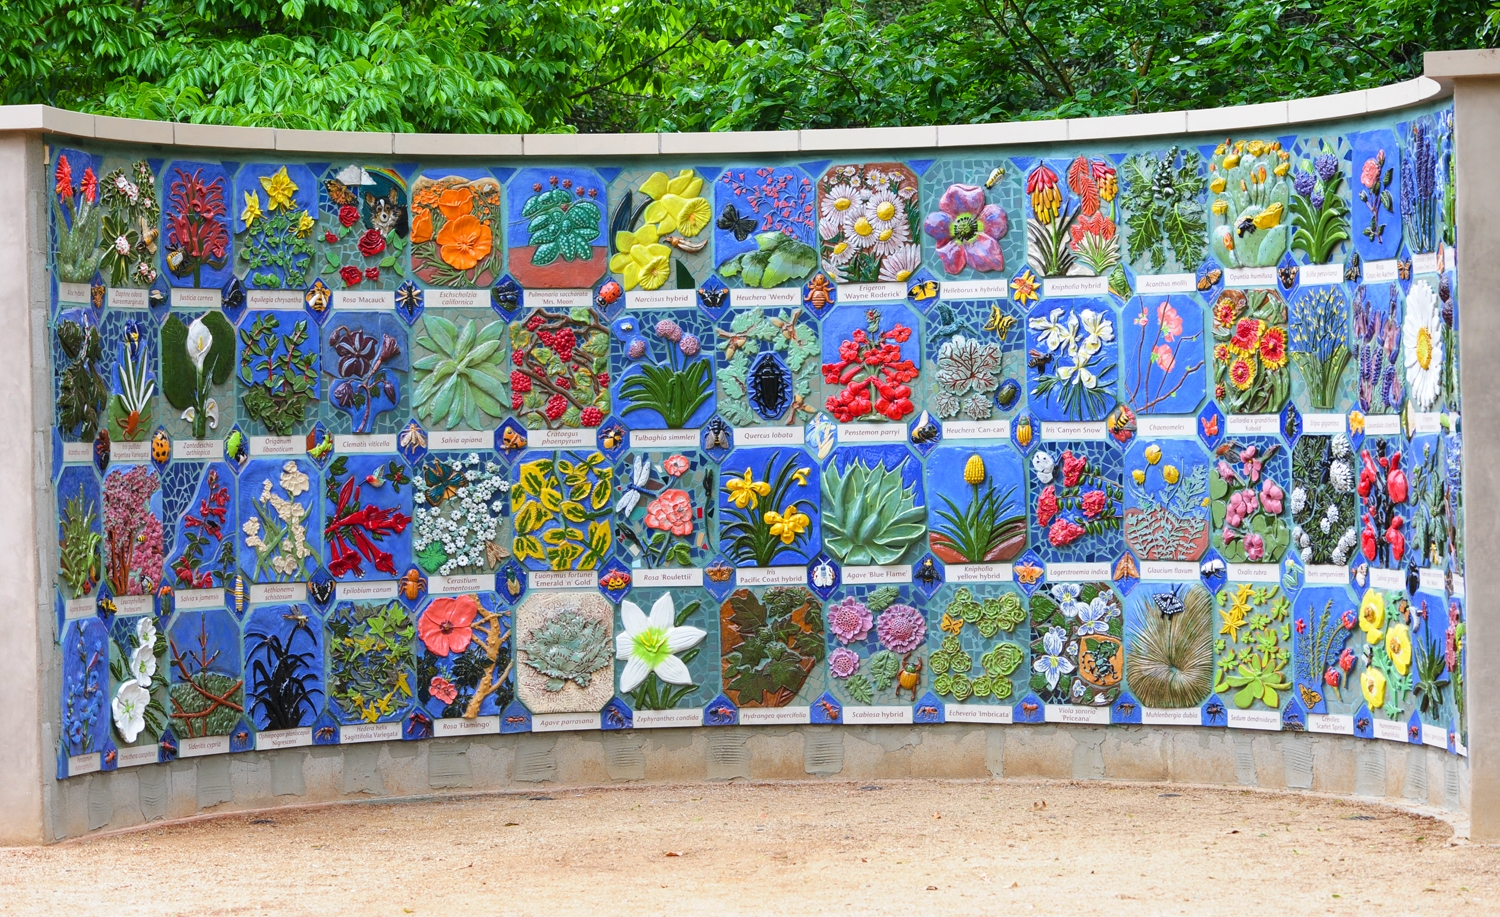 Mosaic Design Ideas 1000 images about mosaic table tops square on pinterest mosaic table tops mosaic tables and mosaics Natures Gallery A Mosaic Mural Celebrating Insects And Plants Is Now At Home In The Storer Garden Uc Davis Arboretum On Garrod Drive